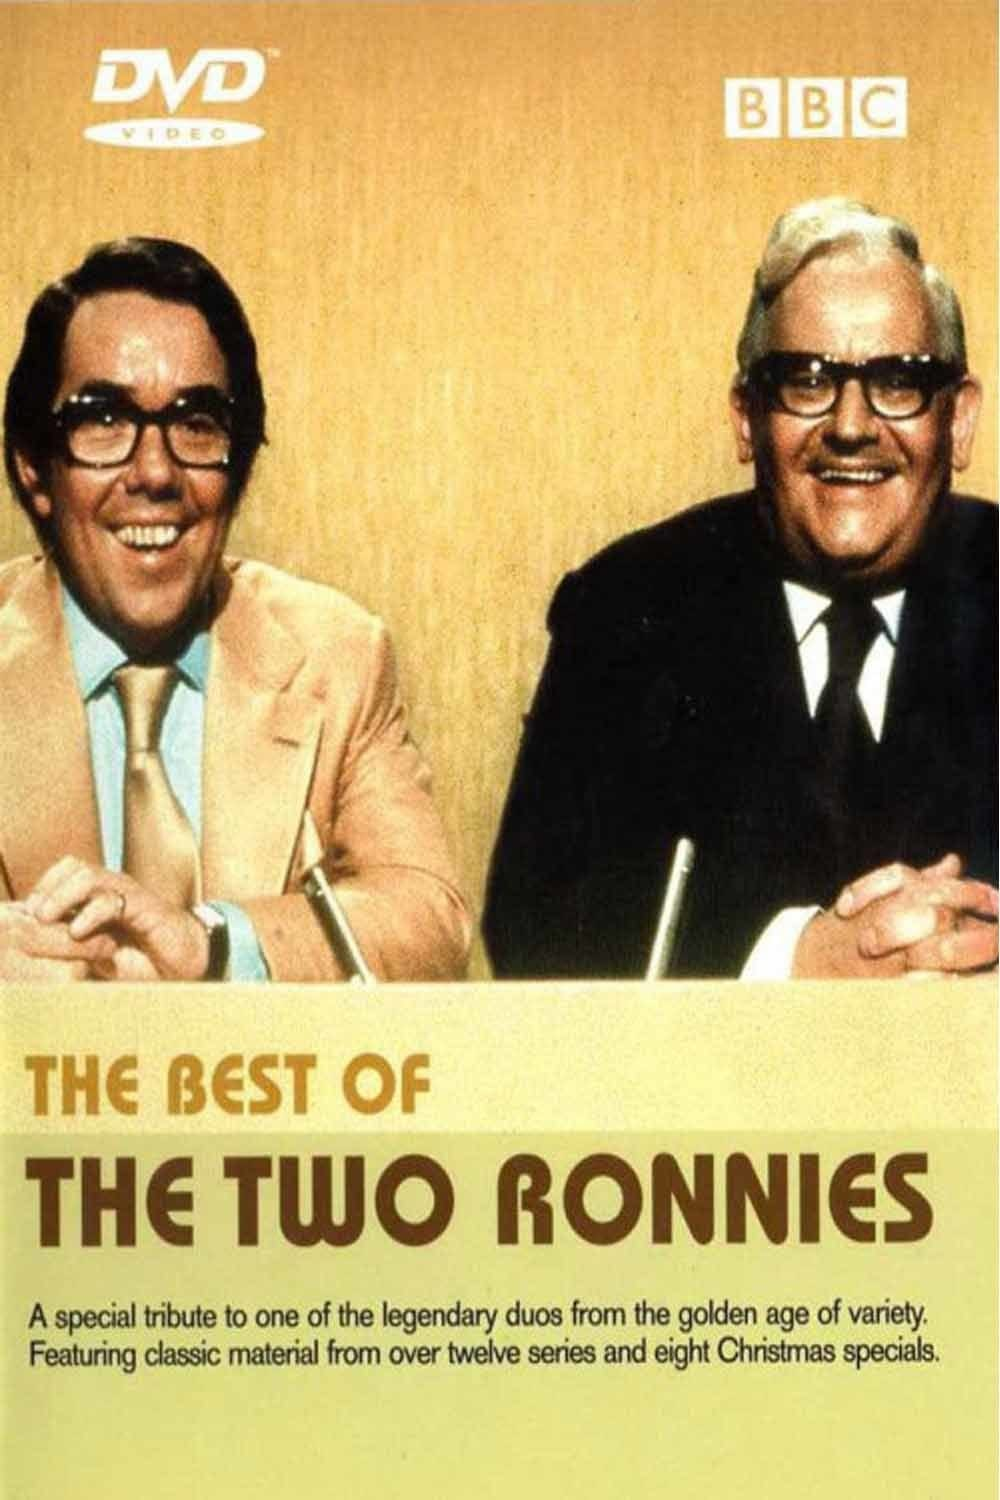 The Best Of The Two Ronnies (1971)